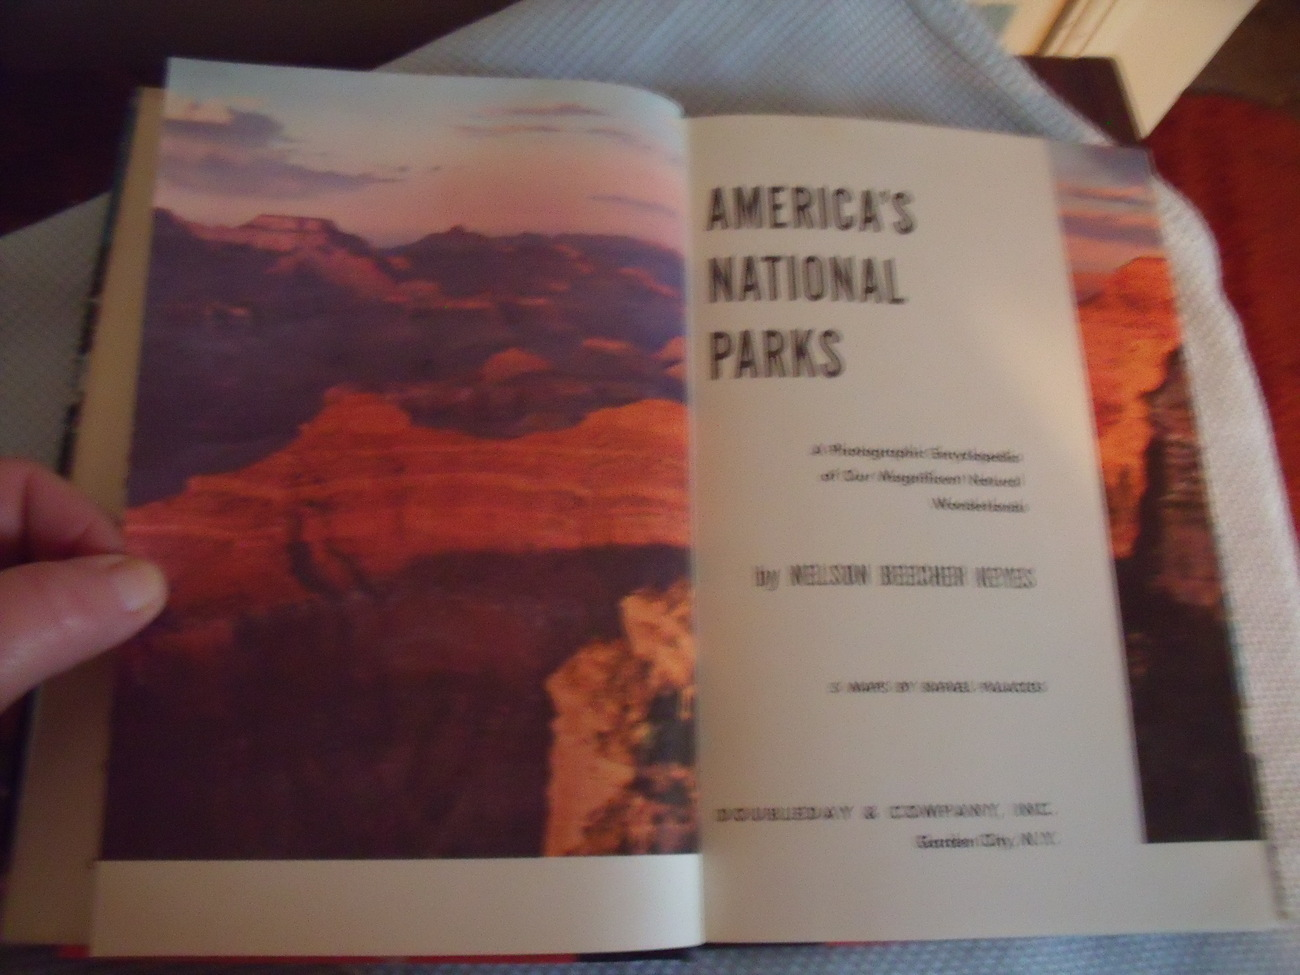 America's National Parks 1957 edition by Nelson Keyes